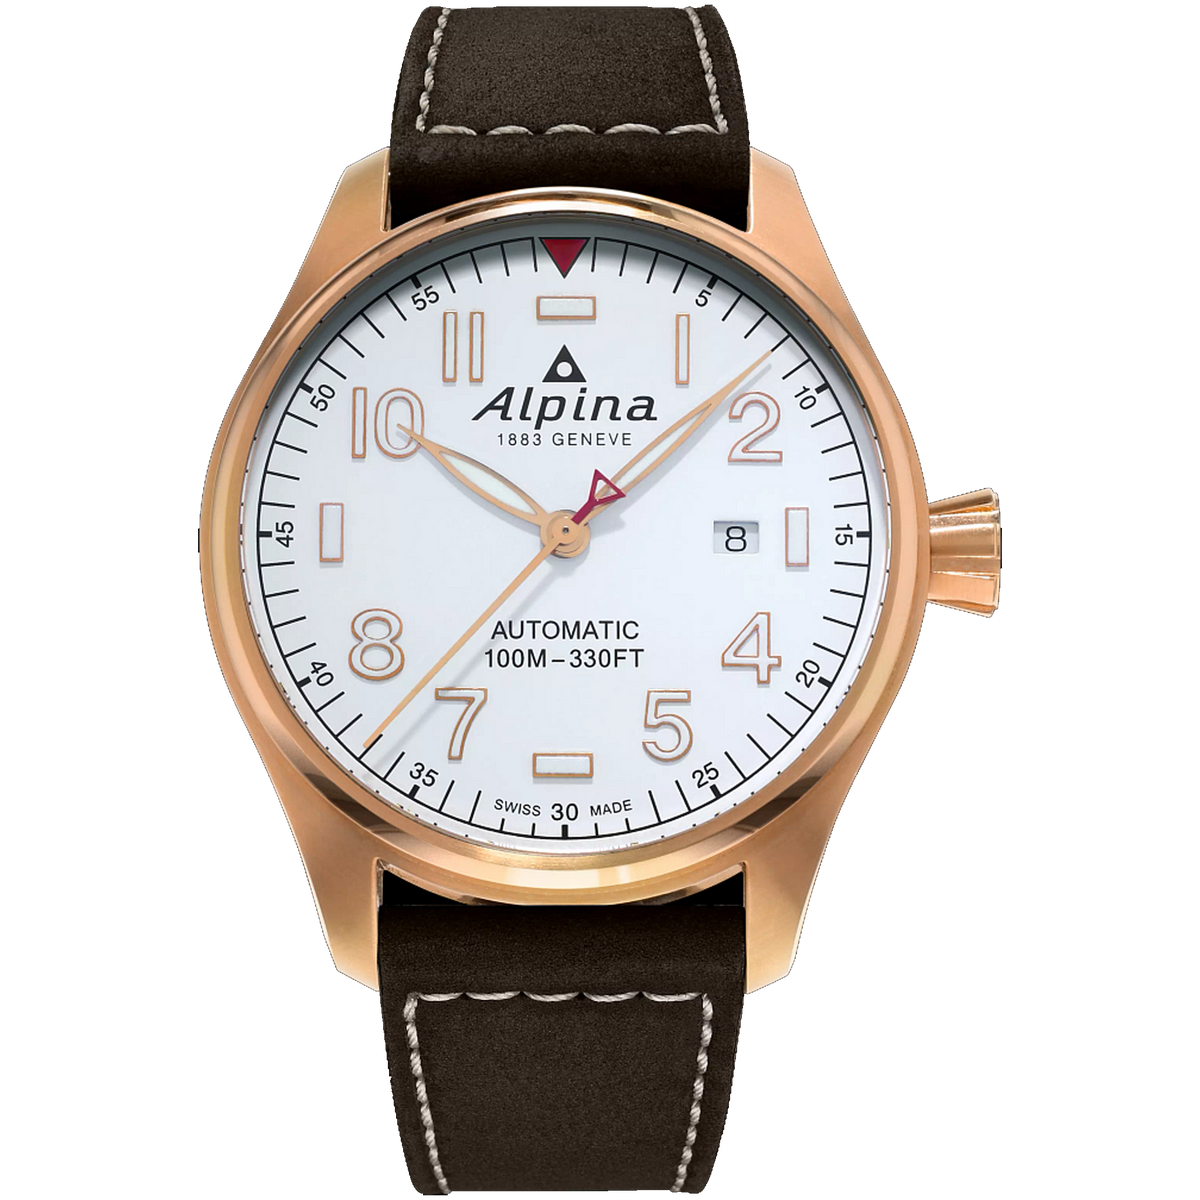 Alpina - STARTIMER PILOT AUTOMATIC - Rose Gold Tone with Brown Leather